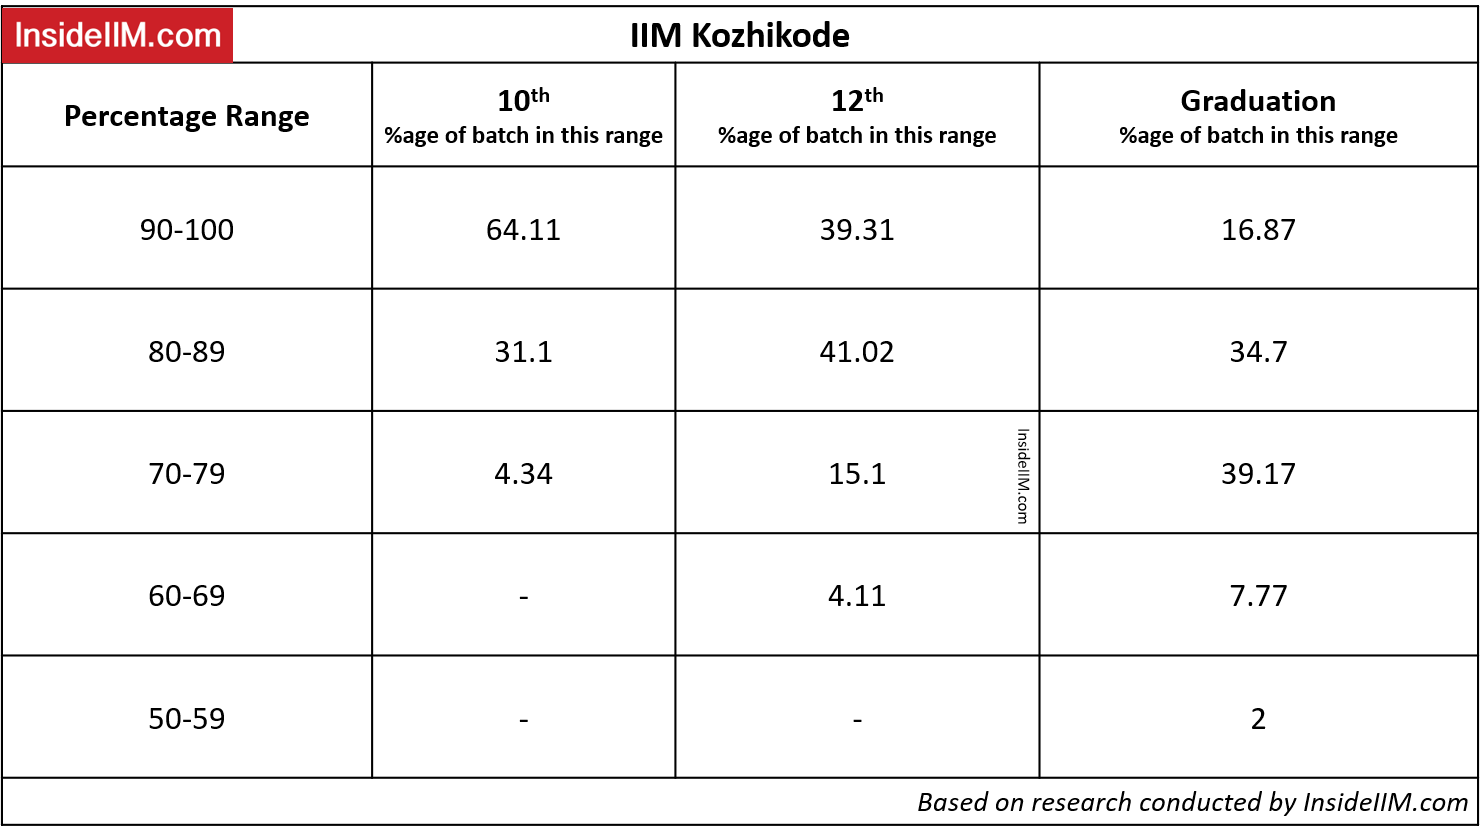 IIM Academic Profile - IIM Kozhikode Academic Profile Requirements